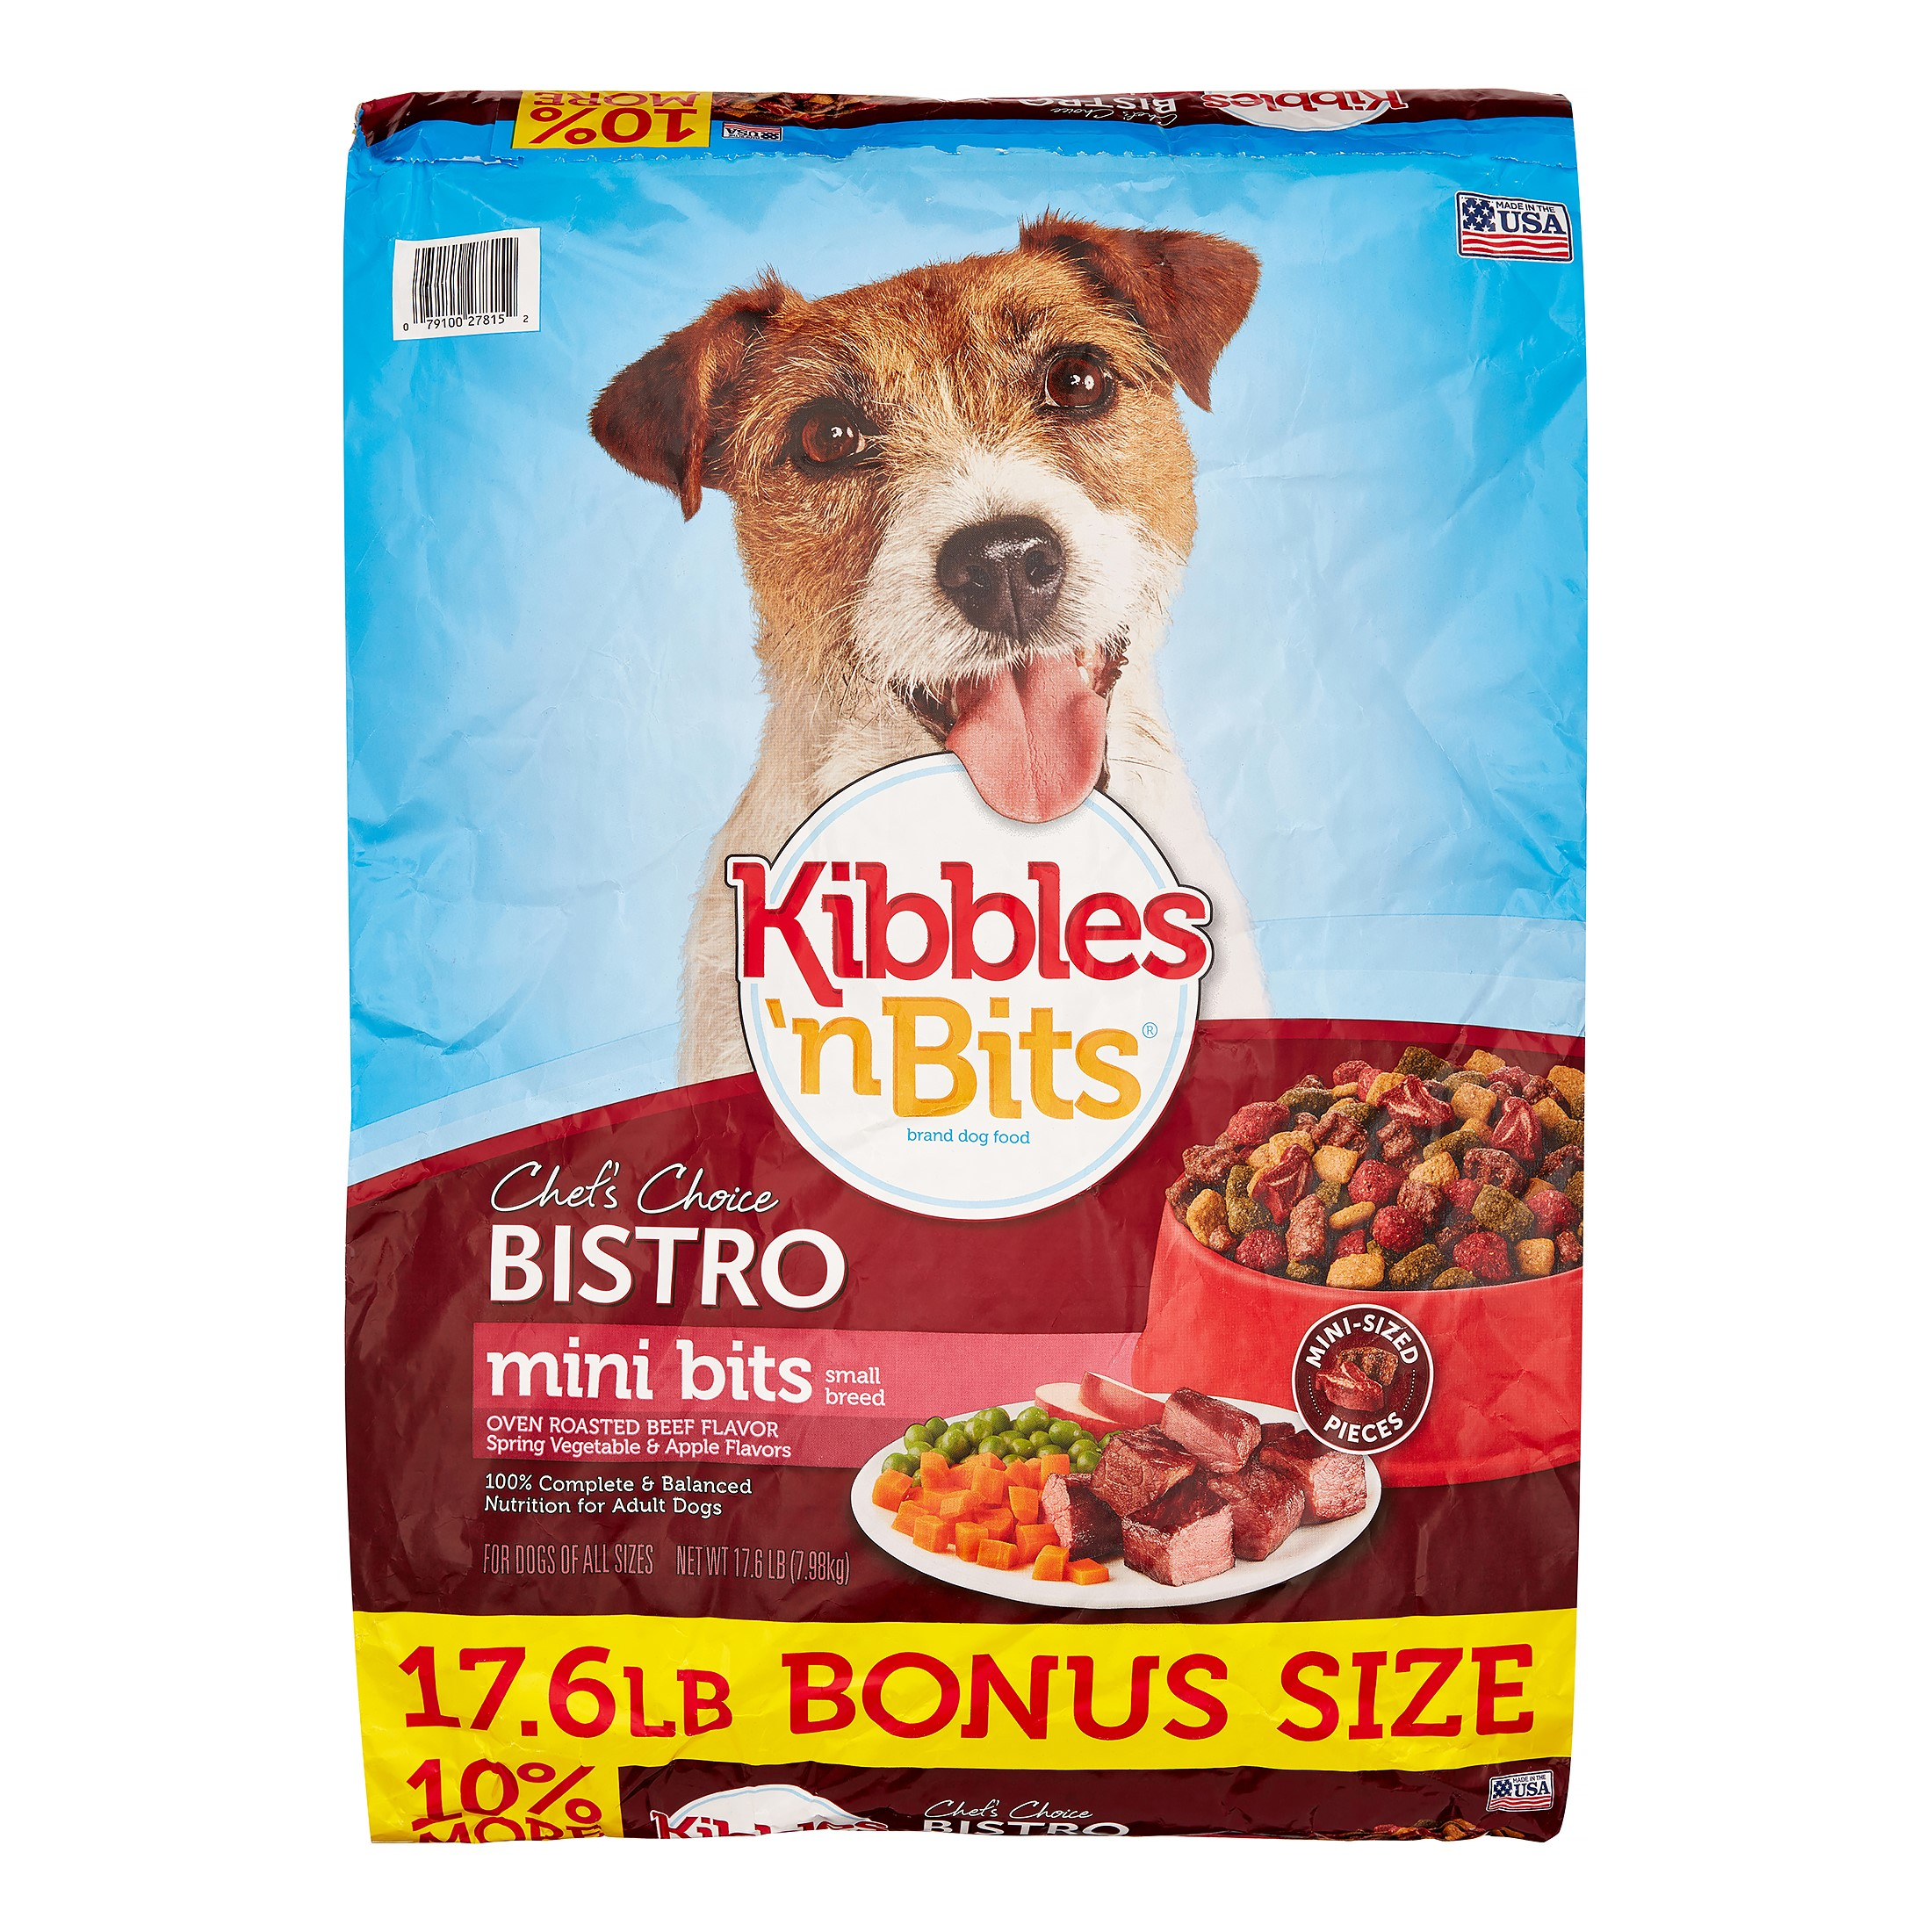 Kibbles 'n Bits Bistro Mini Bits Small Breed Oven Roasted Beef Flavor Dog Food, 17.6-Pound by Big Heart Pet Brands